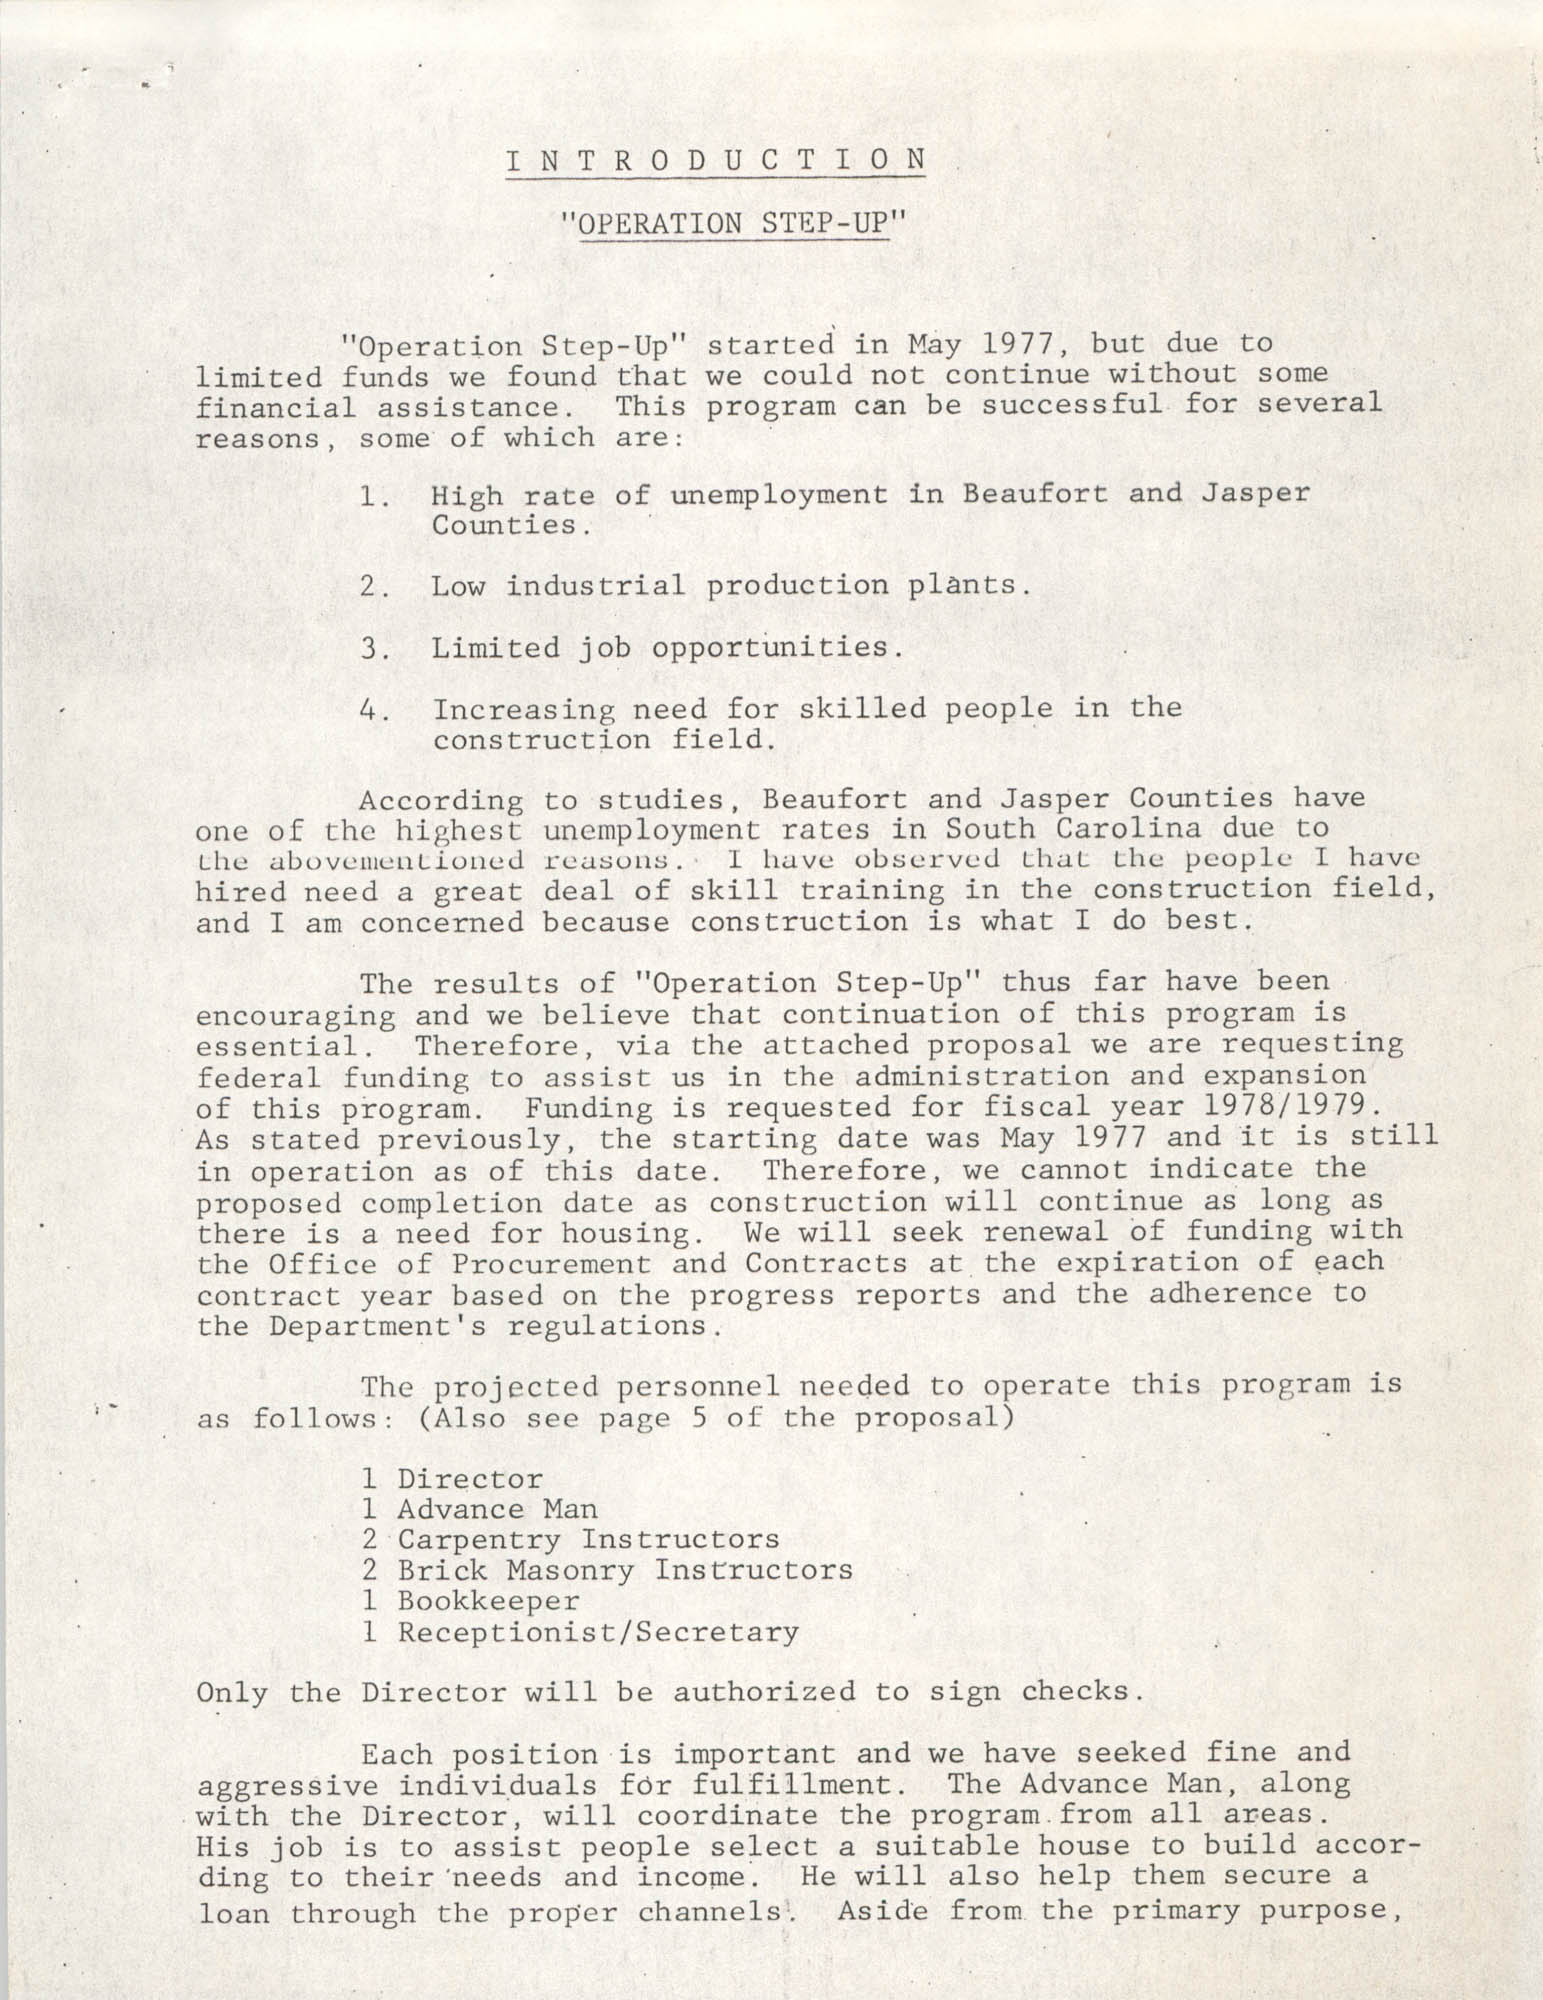 Operation Step-up, Introduction, Page 1